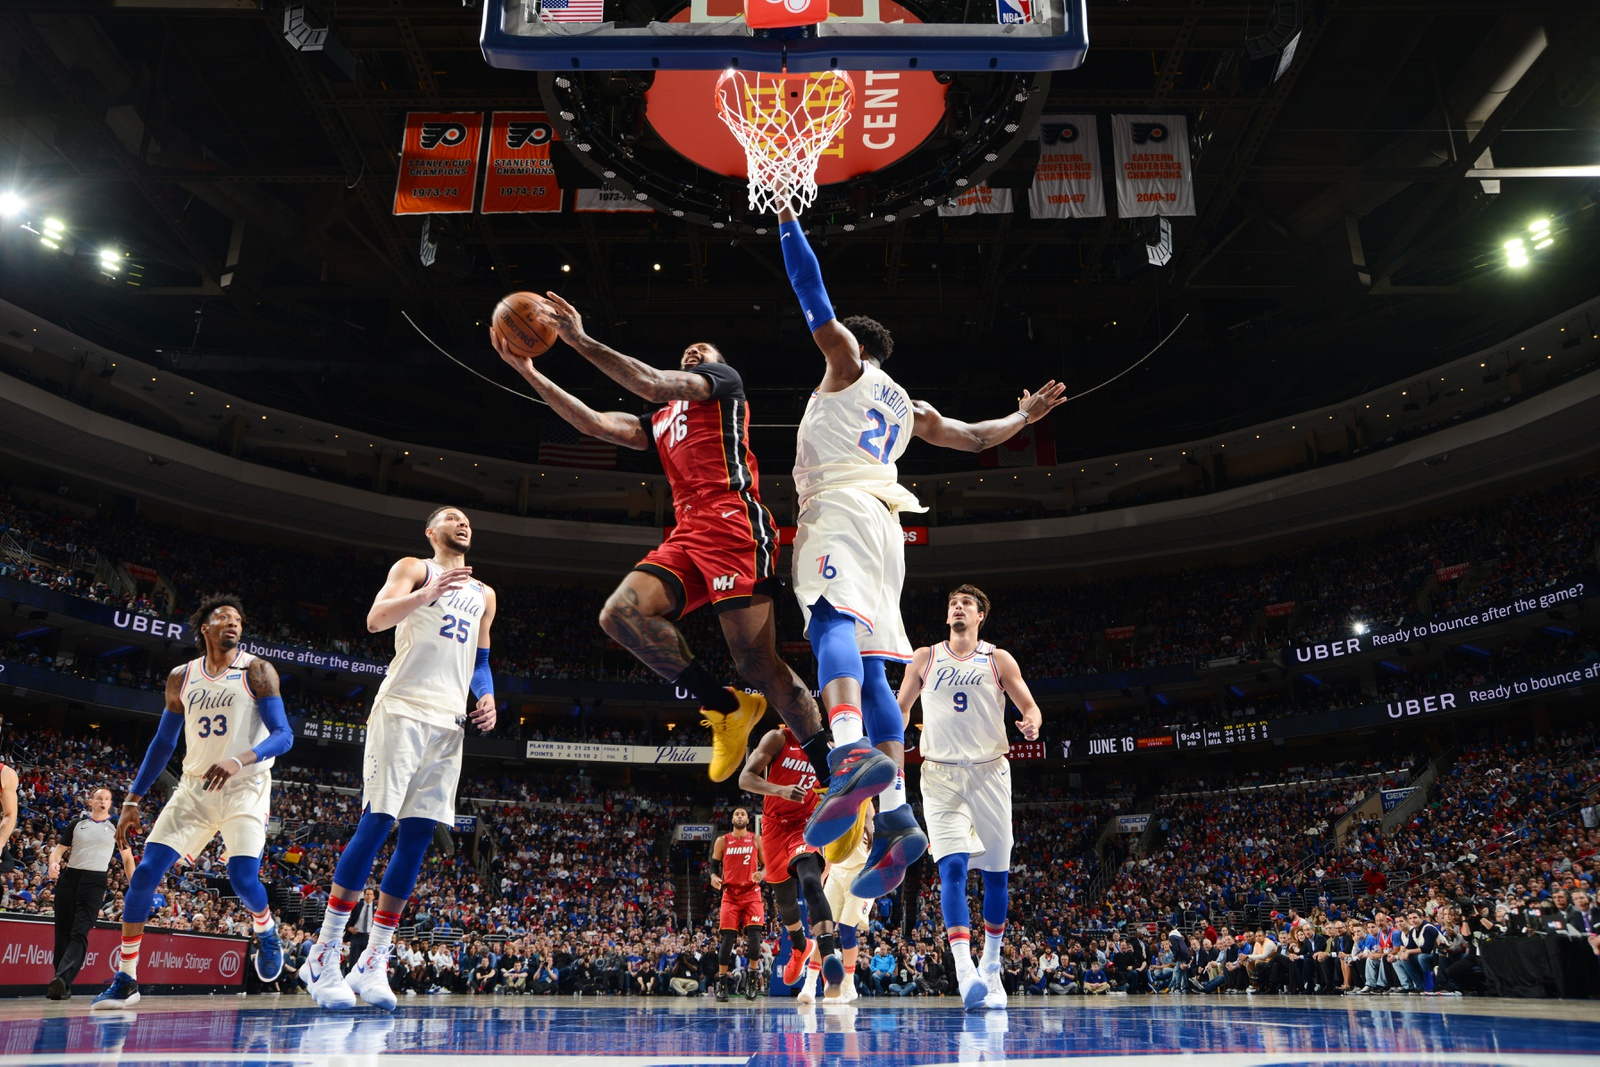 James Johnson #16 of the Miami Heat goes to the basket against the Philadelphia 76ers in Game Five of Round One of the 2018 NBA Playoffs on April 24, 2018 at Wells Fargo Center in Philadelphia, Pennsylvania.